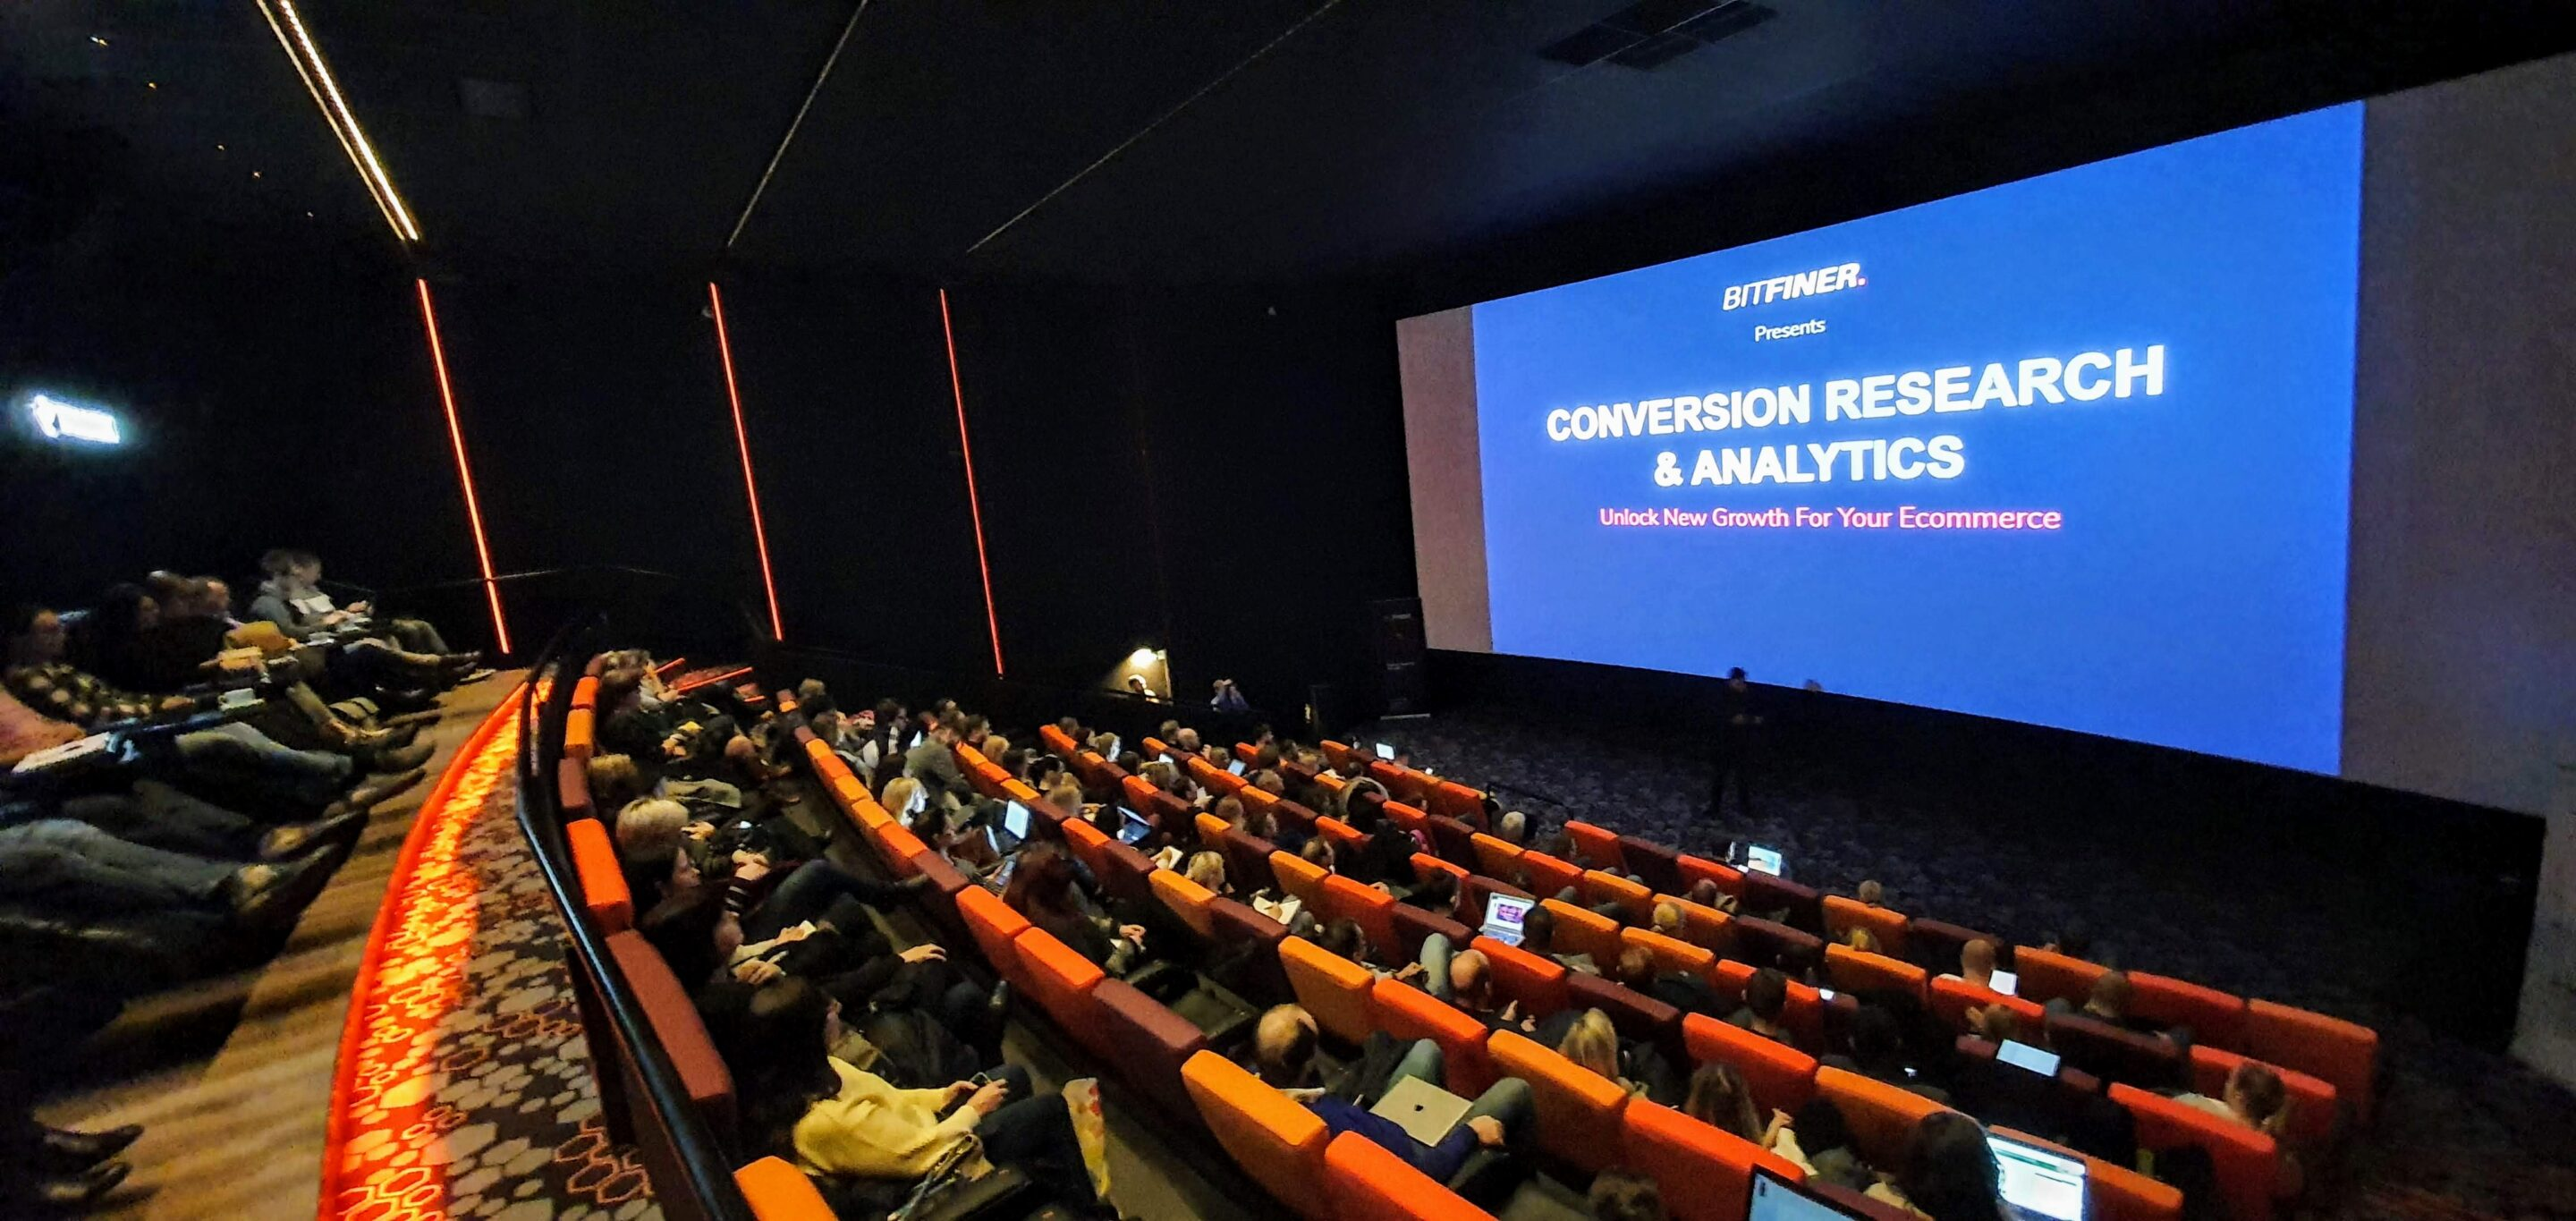 🚀 6 Key takeaways from the ecommerce growth seminar Bit Finer co-hosted on 29 November